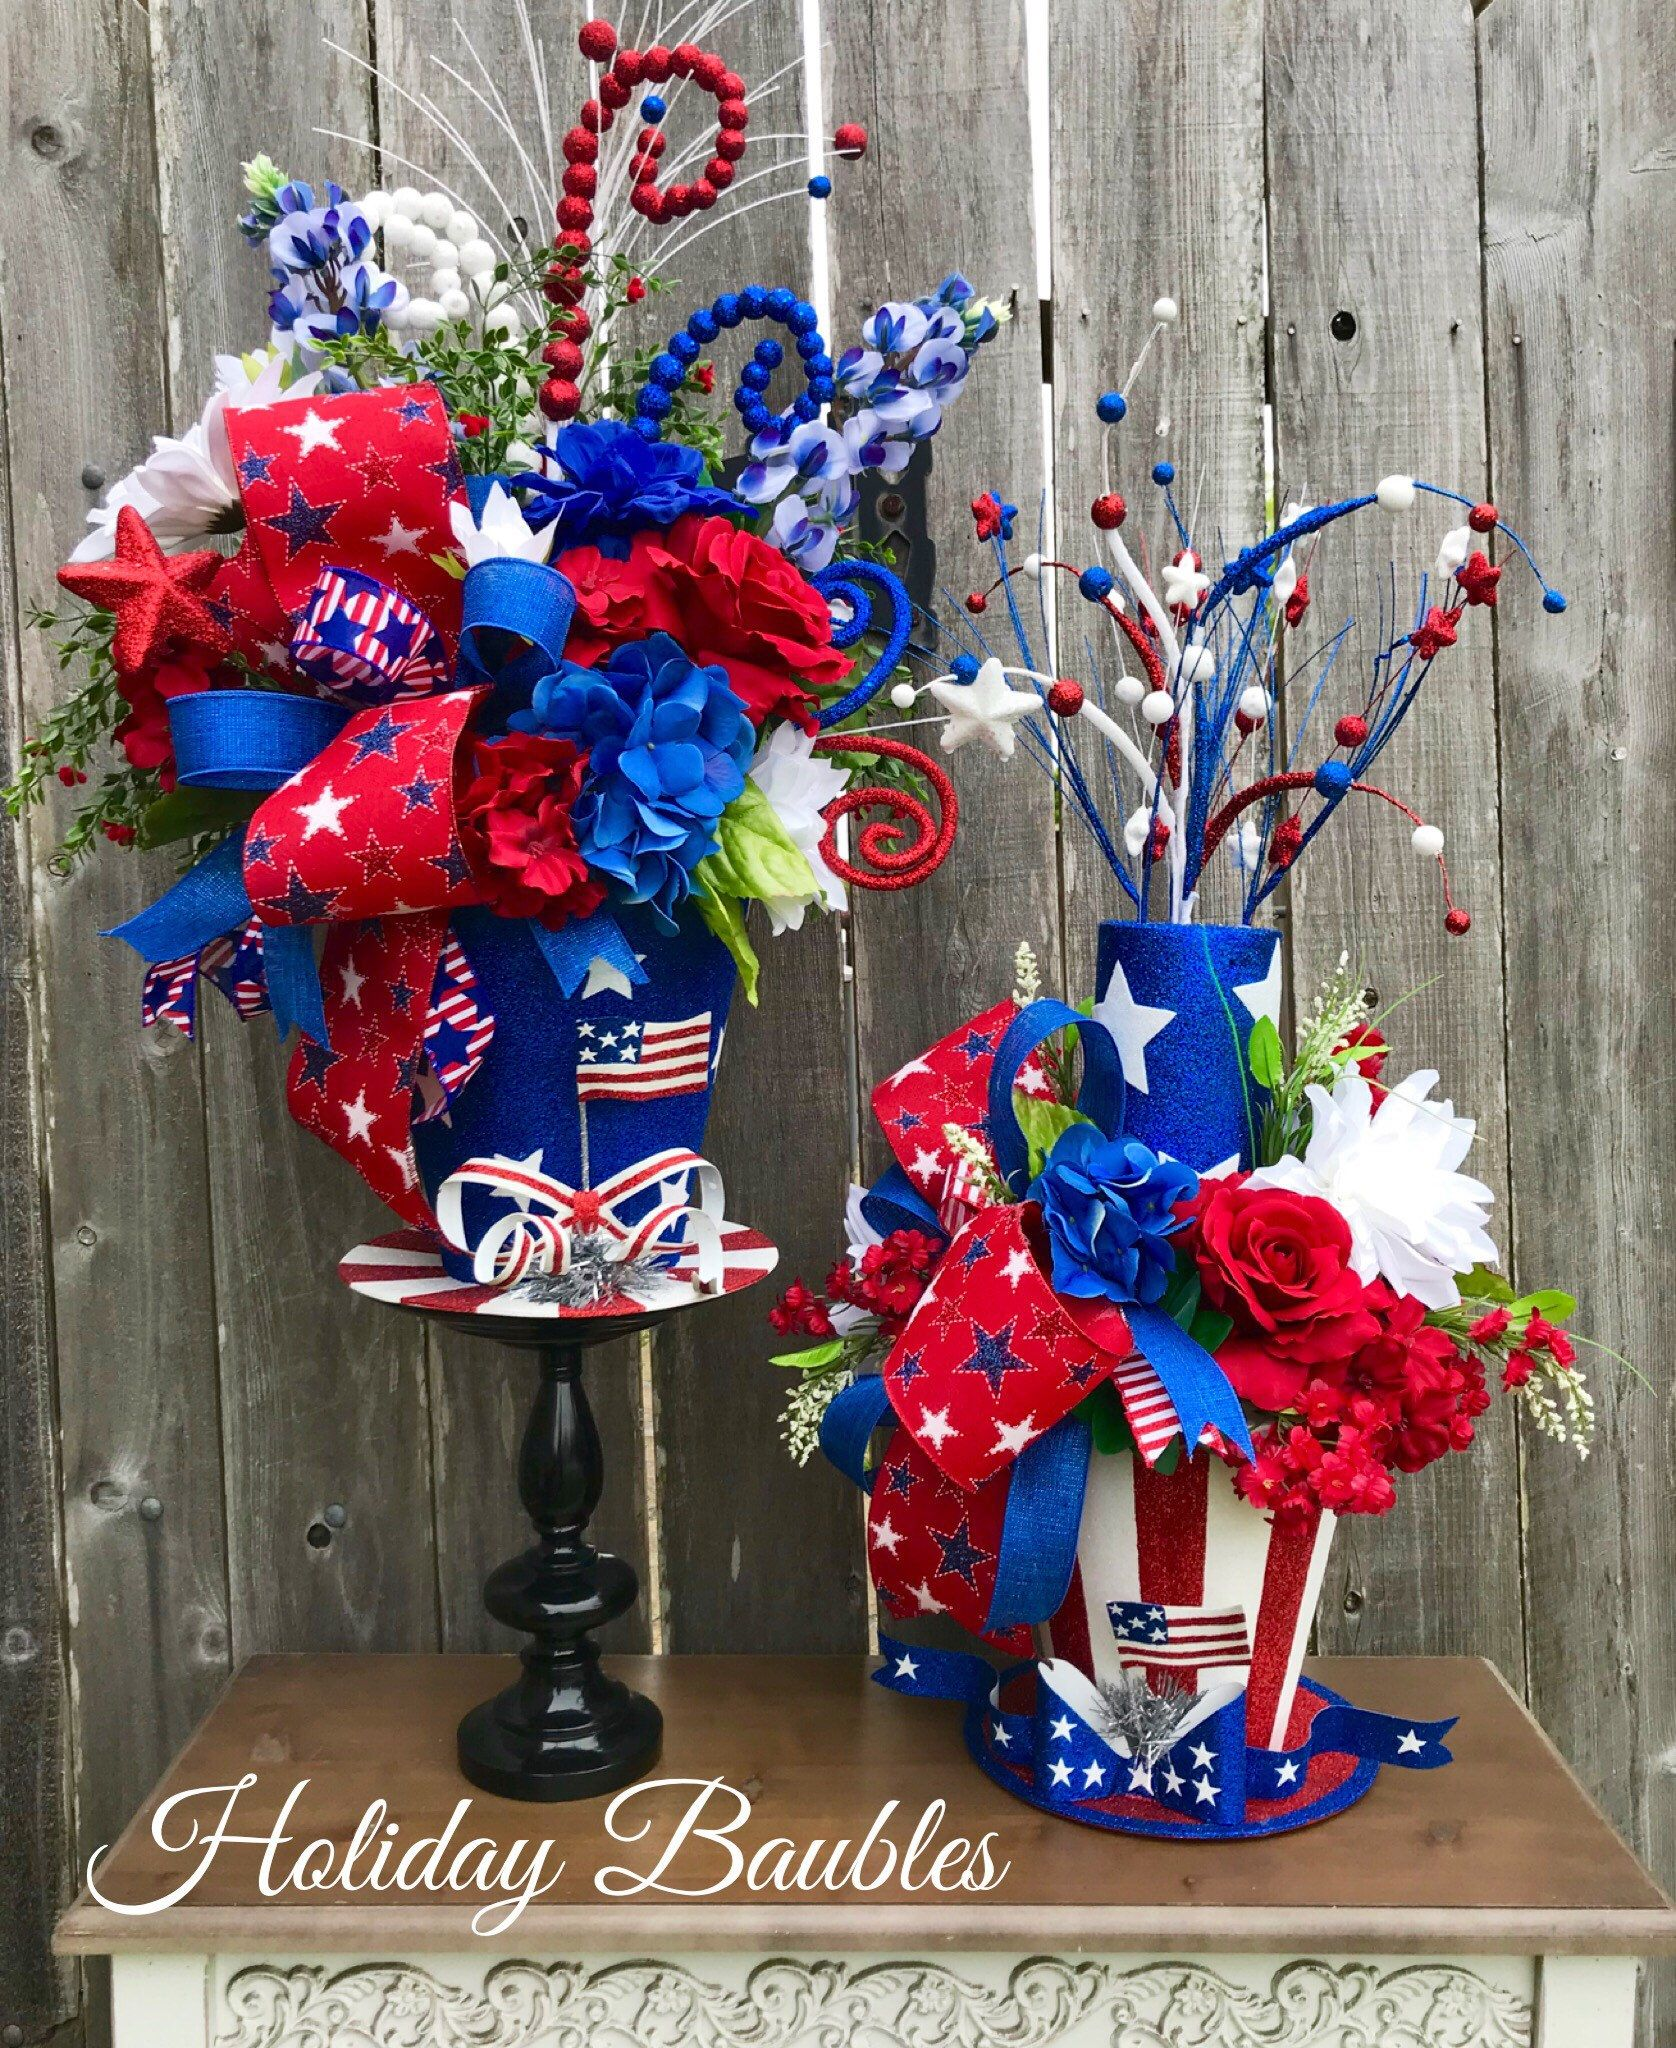 Excited To Share This Item From My Etsy Shop Home Texas Wreath Patriotic Home Wreath Patriot Patriotic Decorations Blue Wreath 4th Of July Wreath